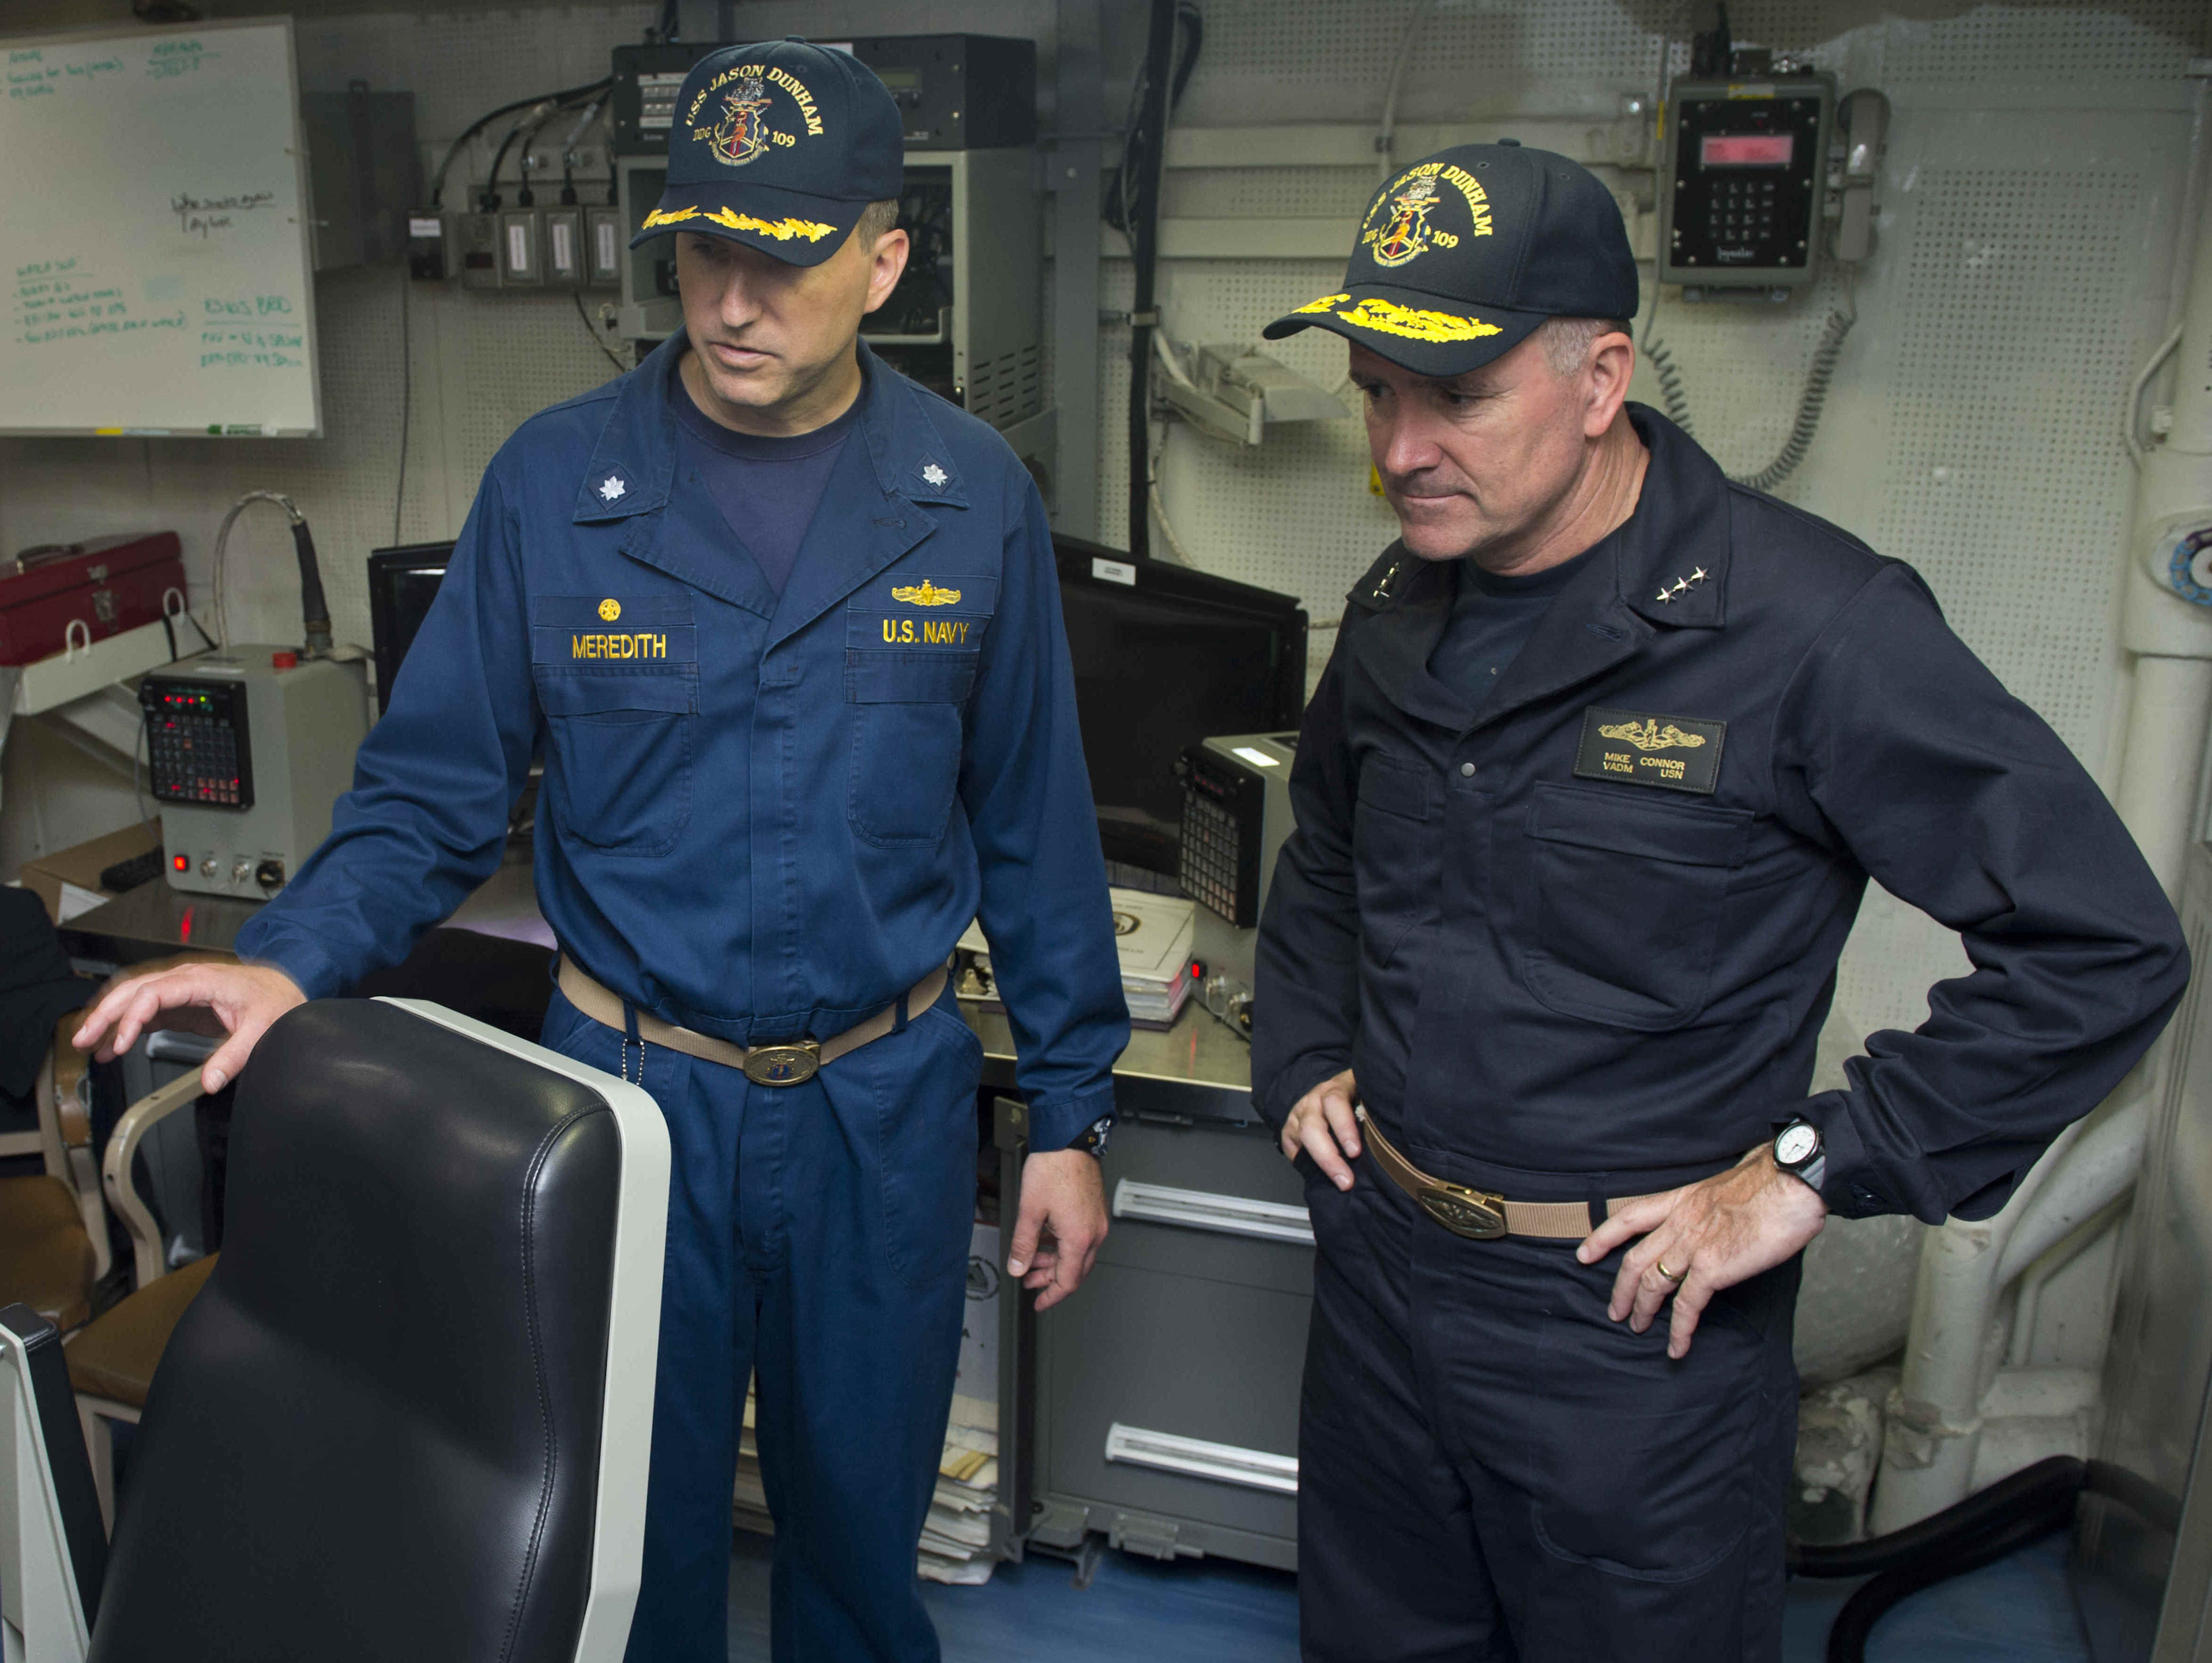 Vice Adm. Michael Connor, commander of Submarine Forces Atlantic, talks with Cmdr. Michael Meredith, commanding officer of the guided-missile destroyer USS Jason Dunham (DDG-109) on May 21, 2014. US Navy Photo